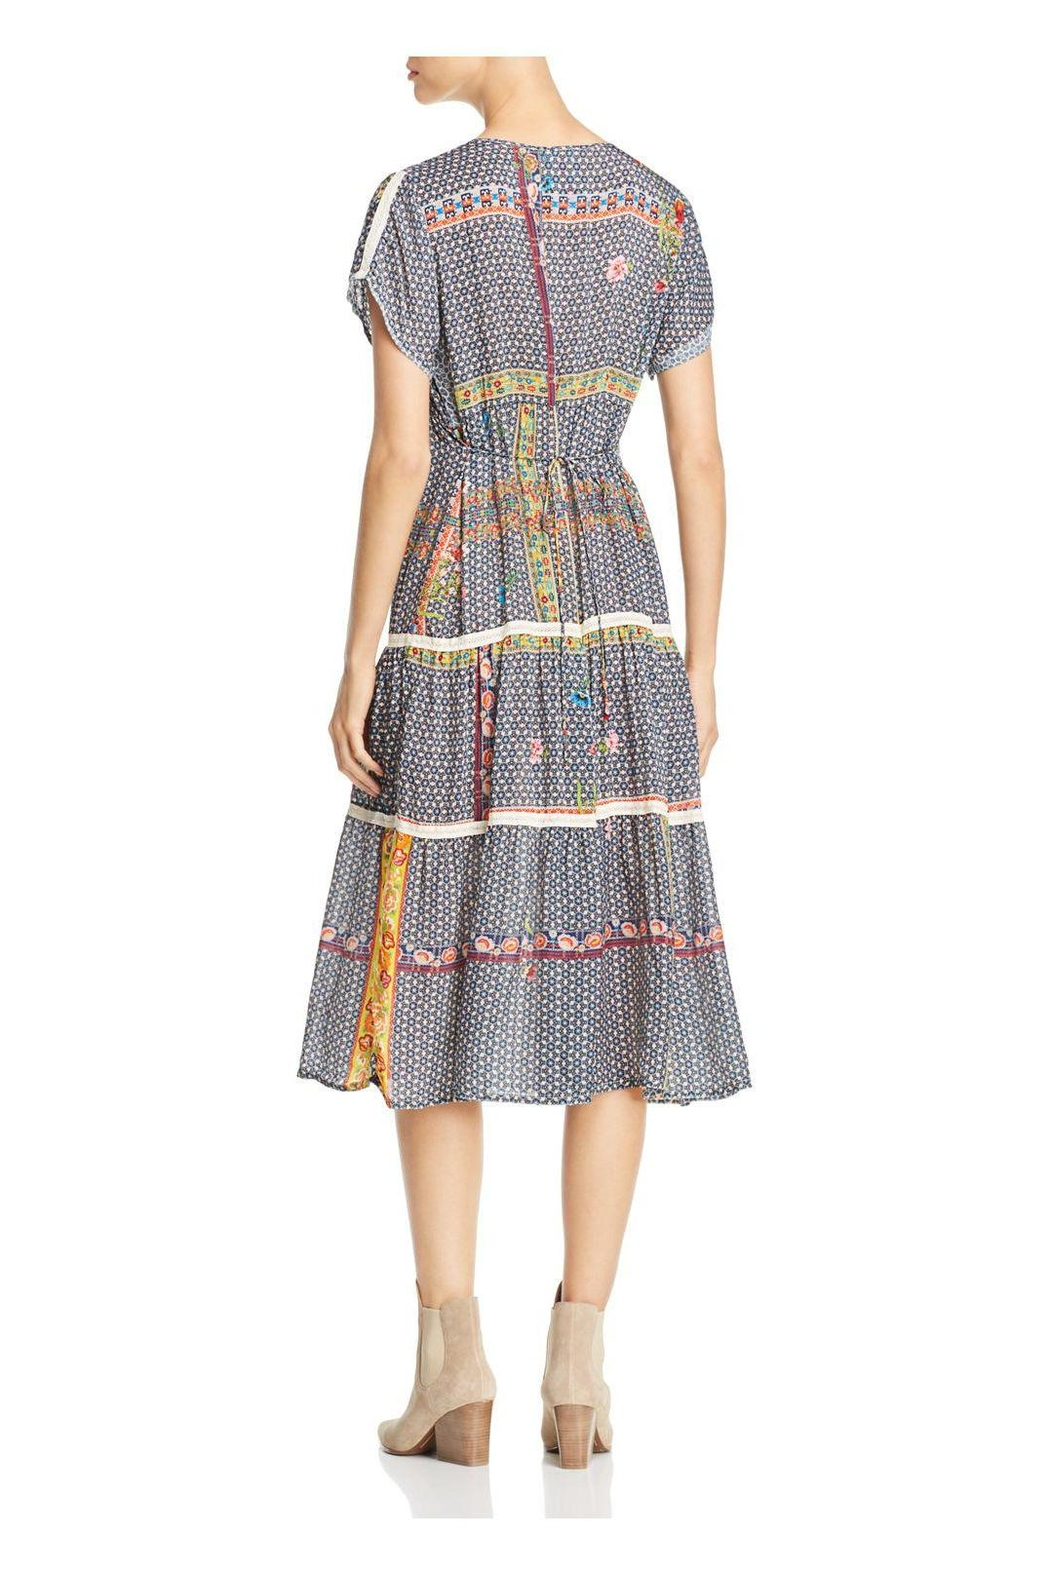 Johnny Was Charm Dress - Front Full Image